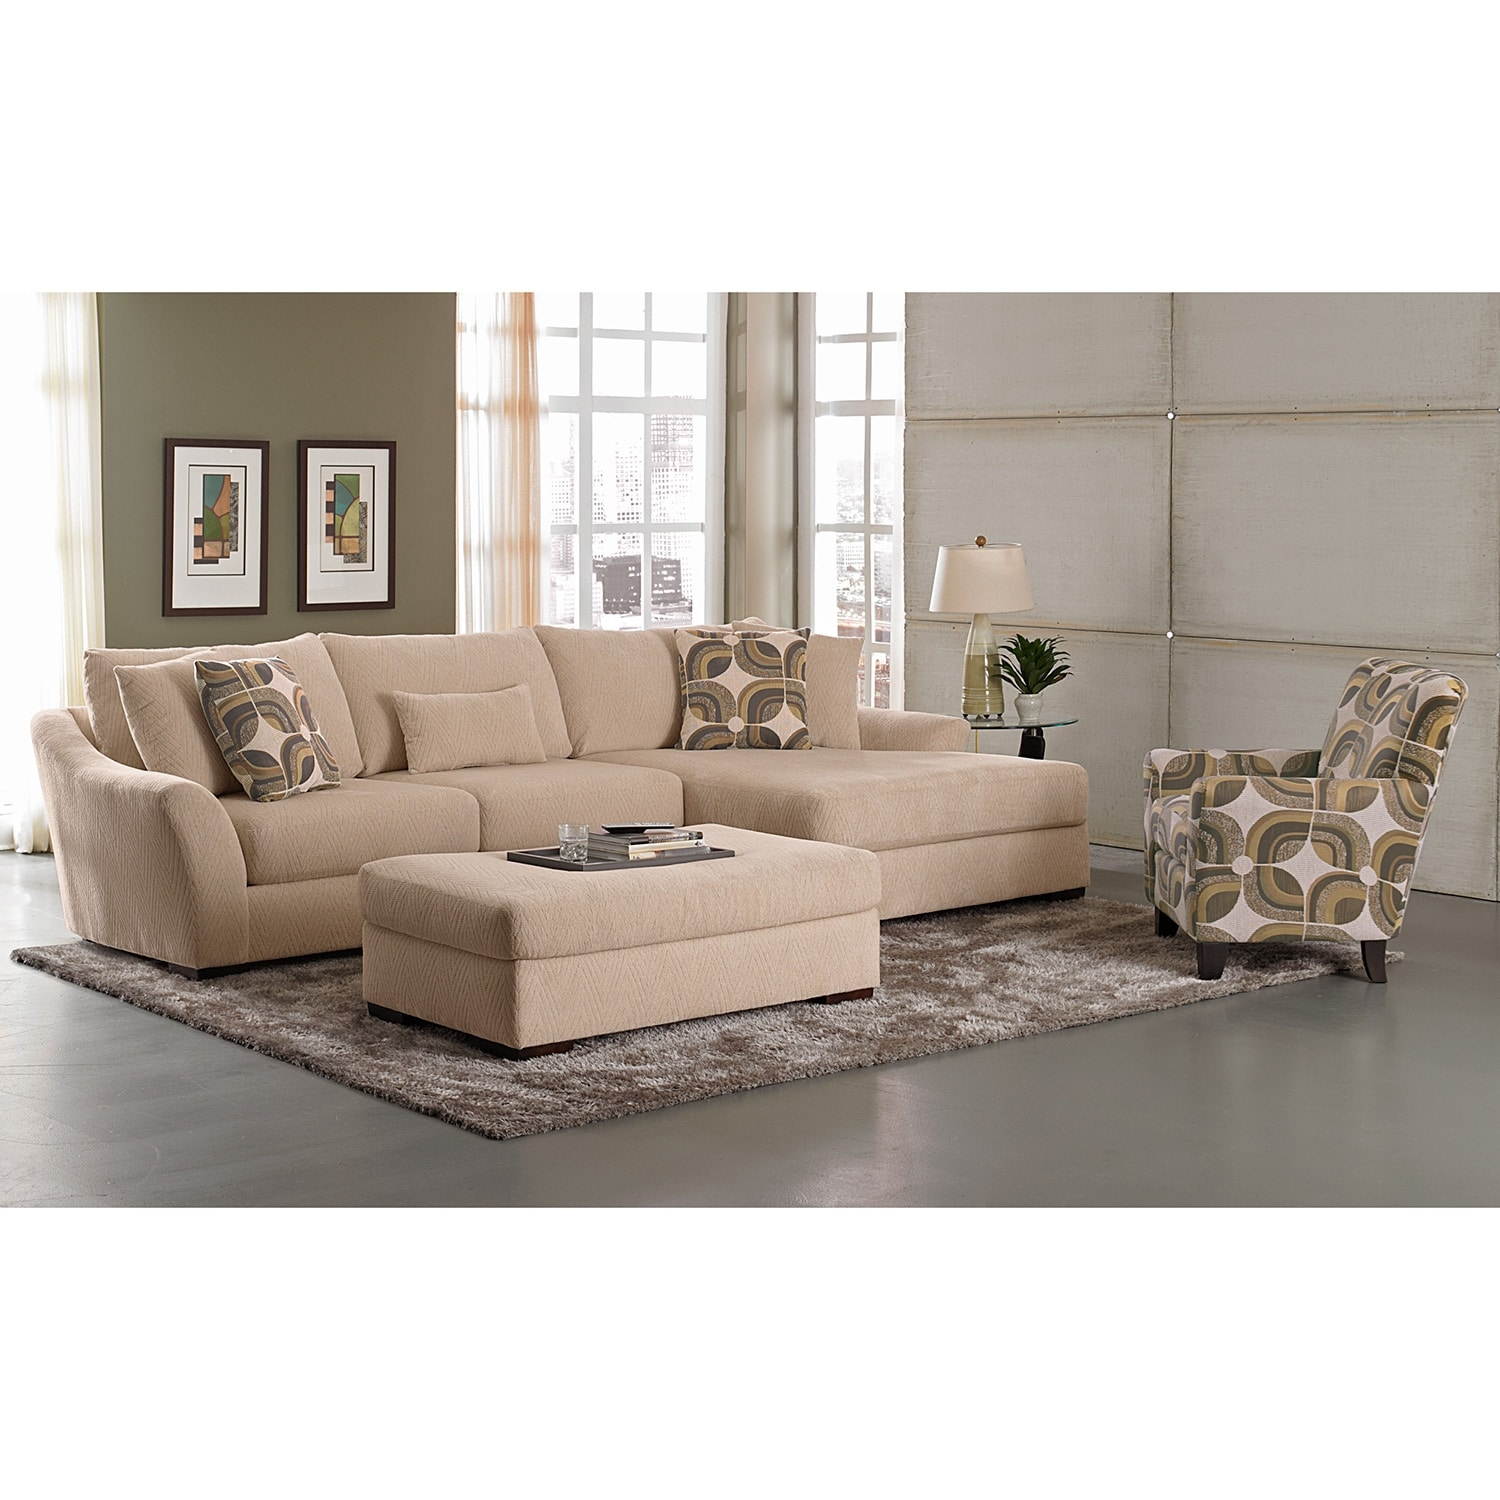 Living room furniture cordoba 2 pc sectional - Oasis Ii 2 Pc Sectional Reverse Value City Furniture Specialty